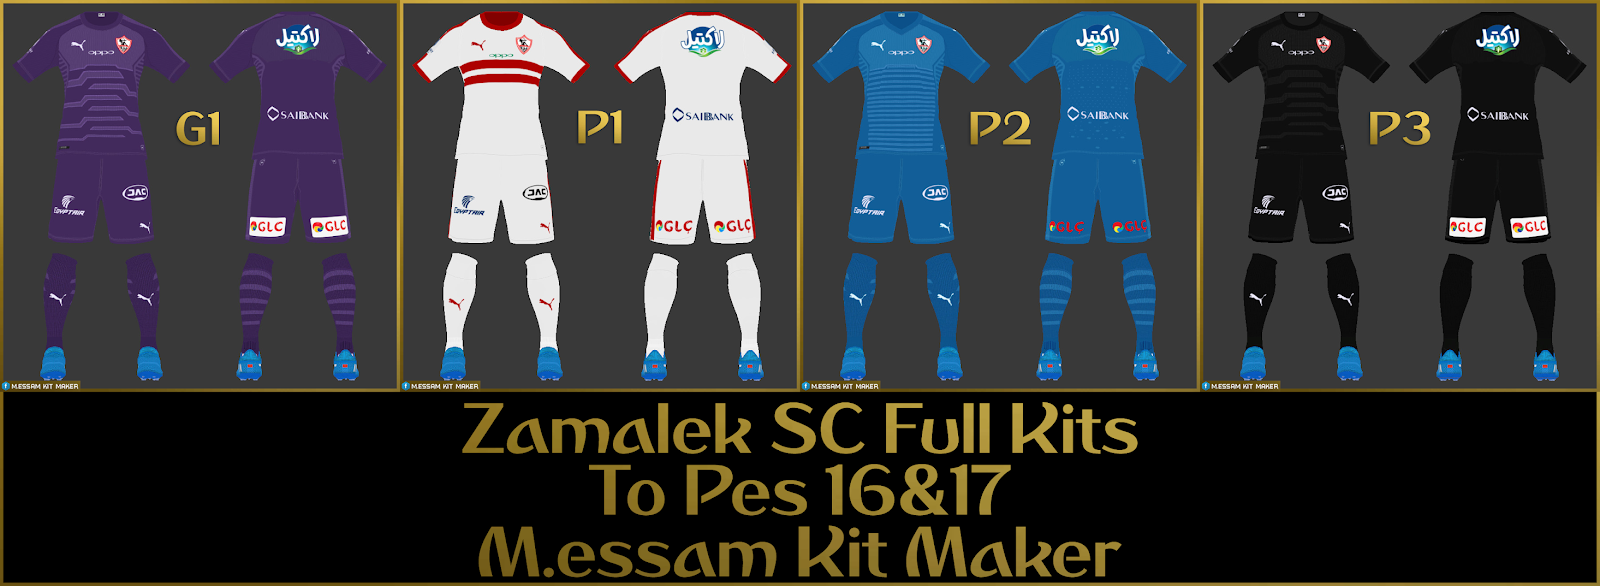 Zamalek SC Full Kits To Pes 16&17 - Essam Patch